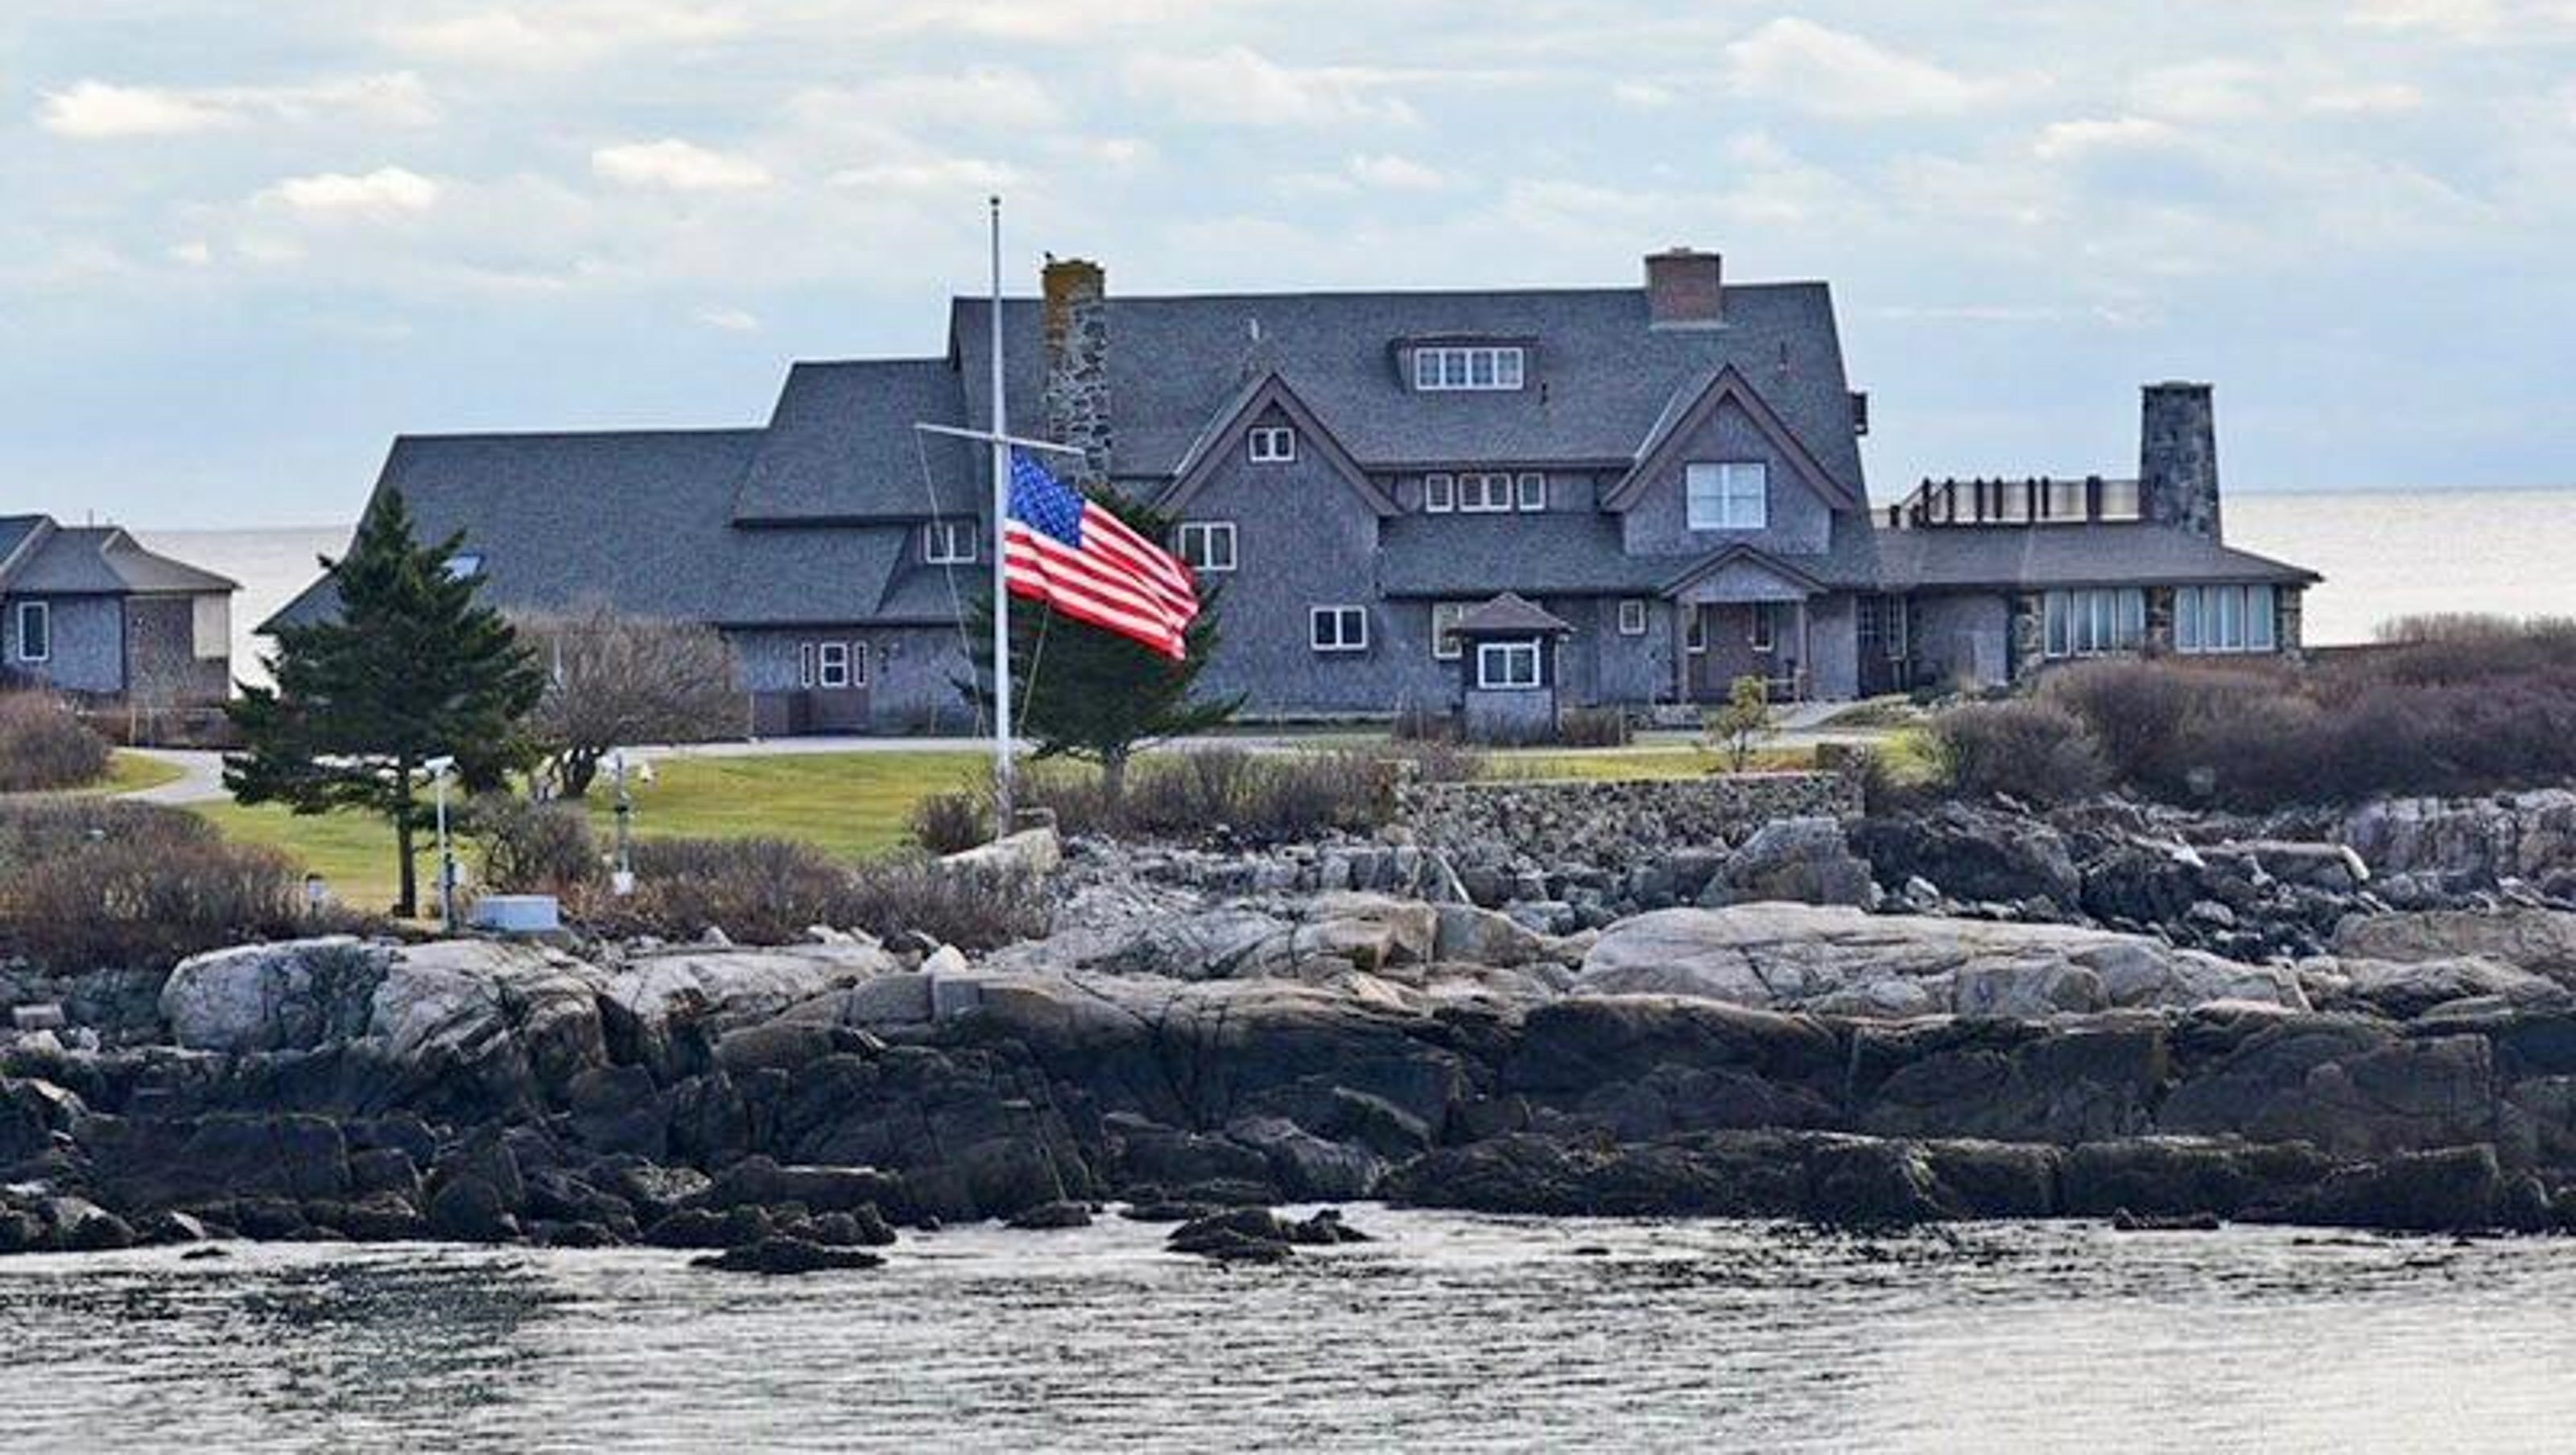 President Bush S Legacy Visible In Kennebunkport Maine